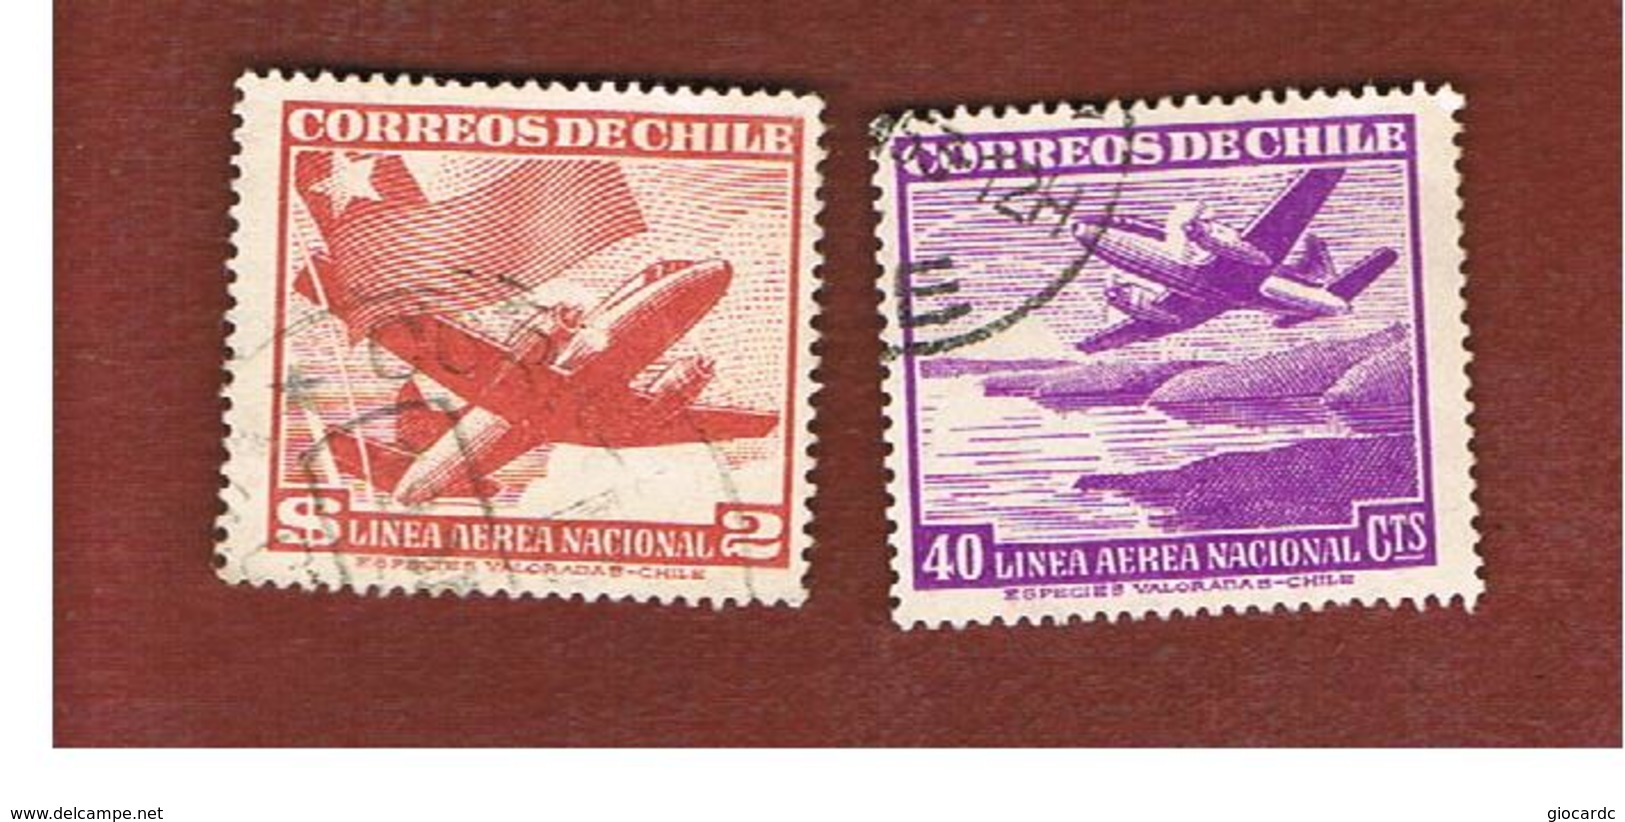 CILE (CHILE)  - SG 396.399 -  1950   AIRPLANES: 2 STAMPS OF THE CURRENT SERIE  -  USED ° - Chile